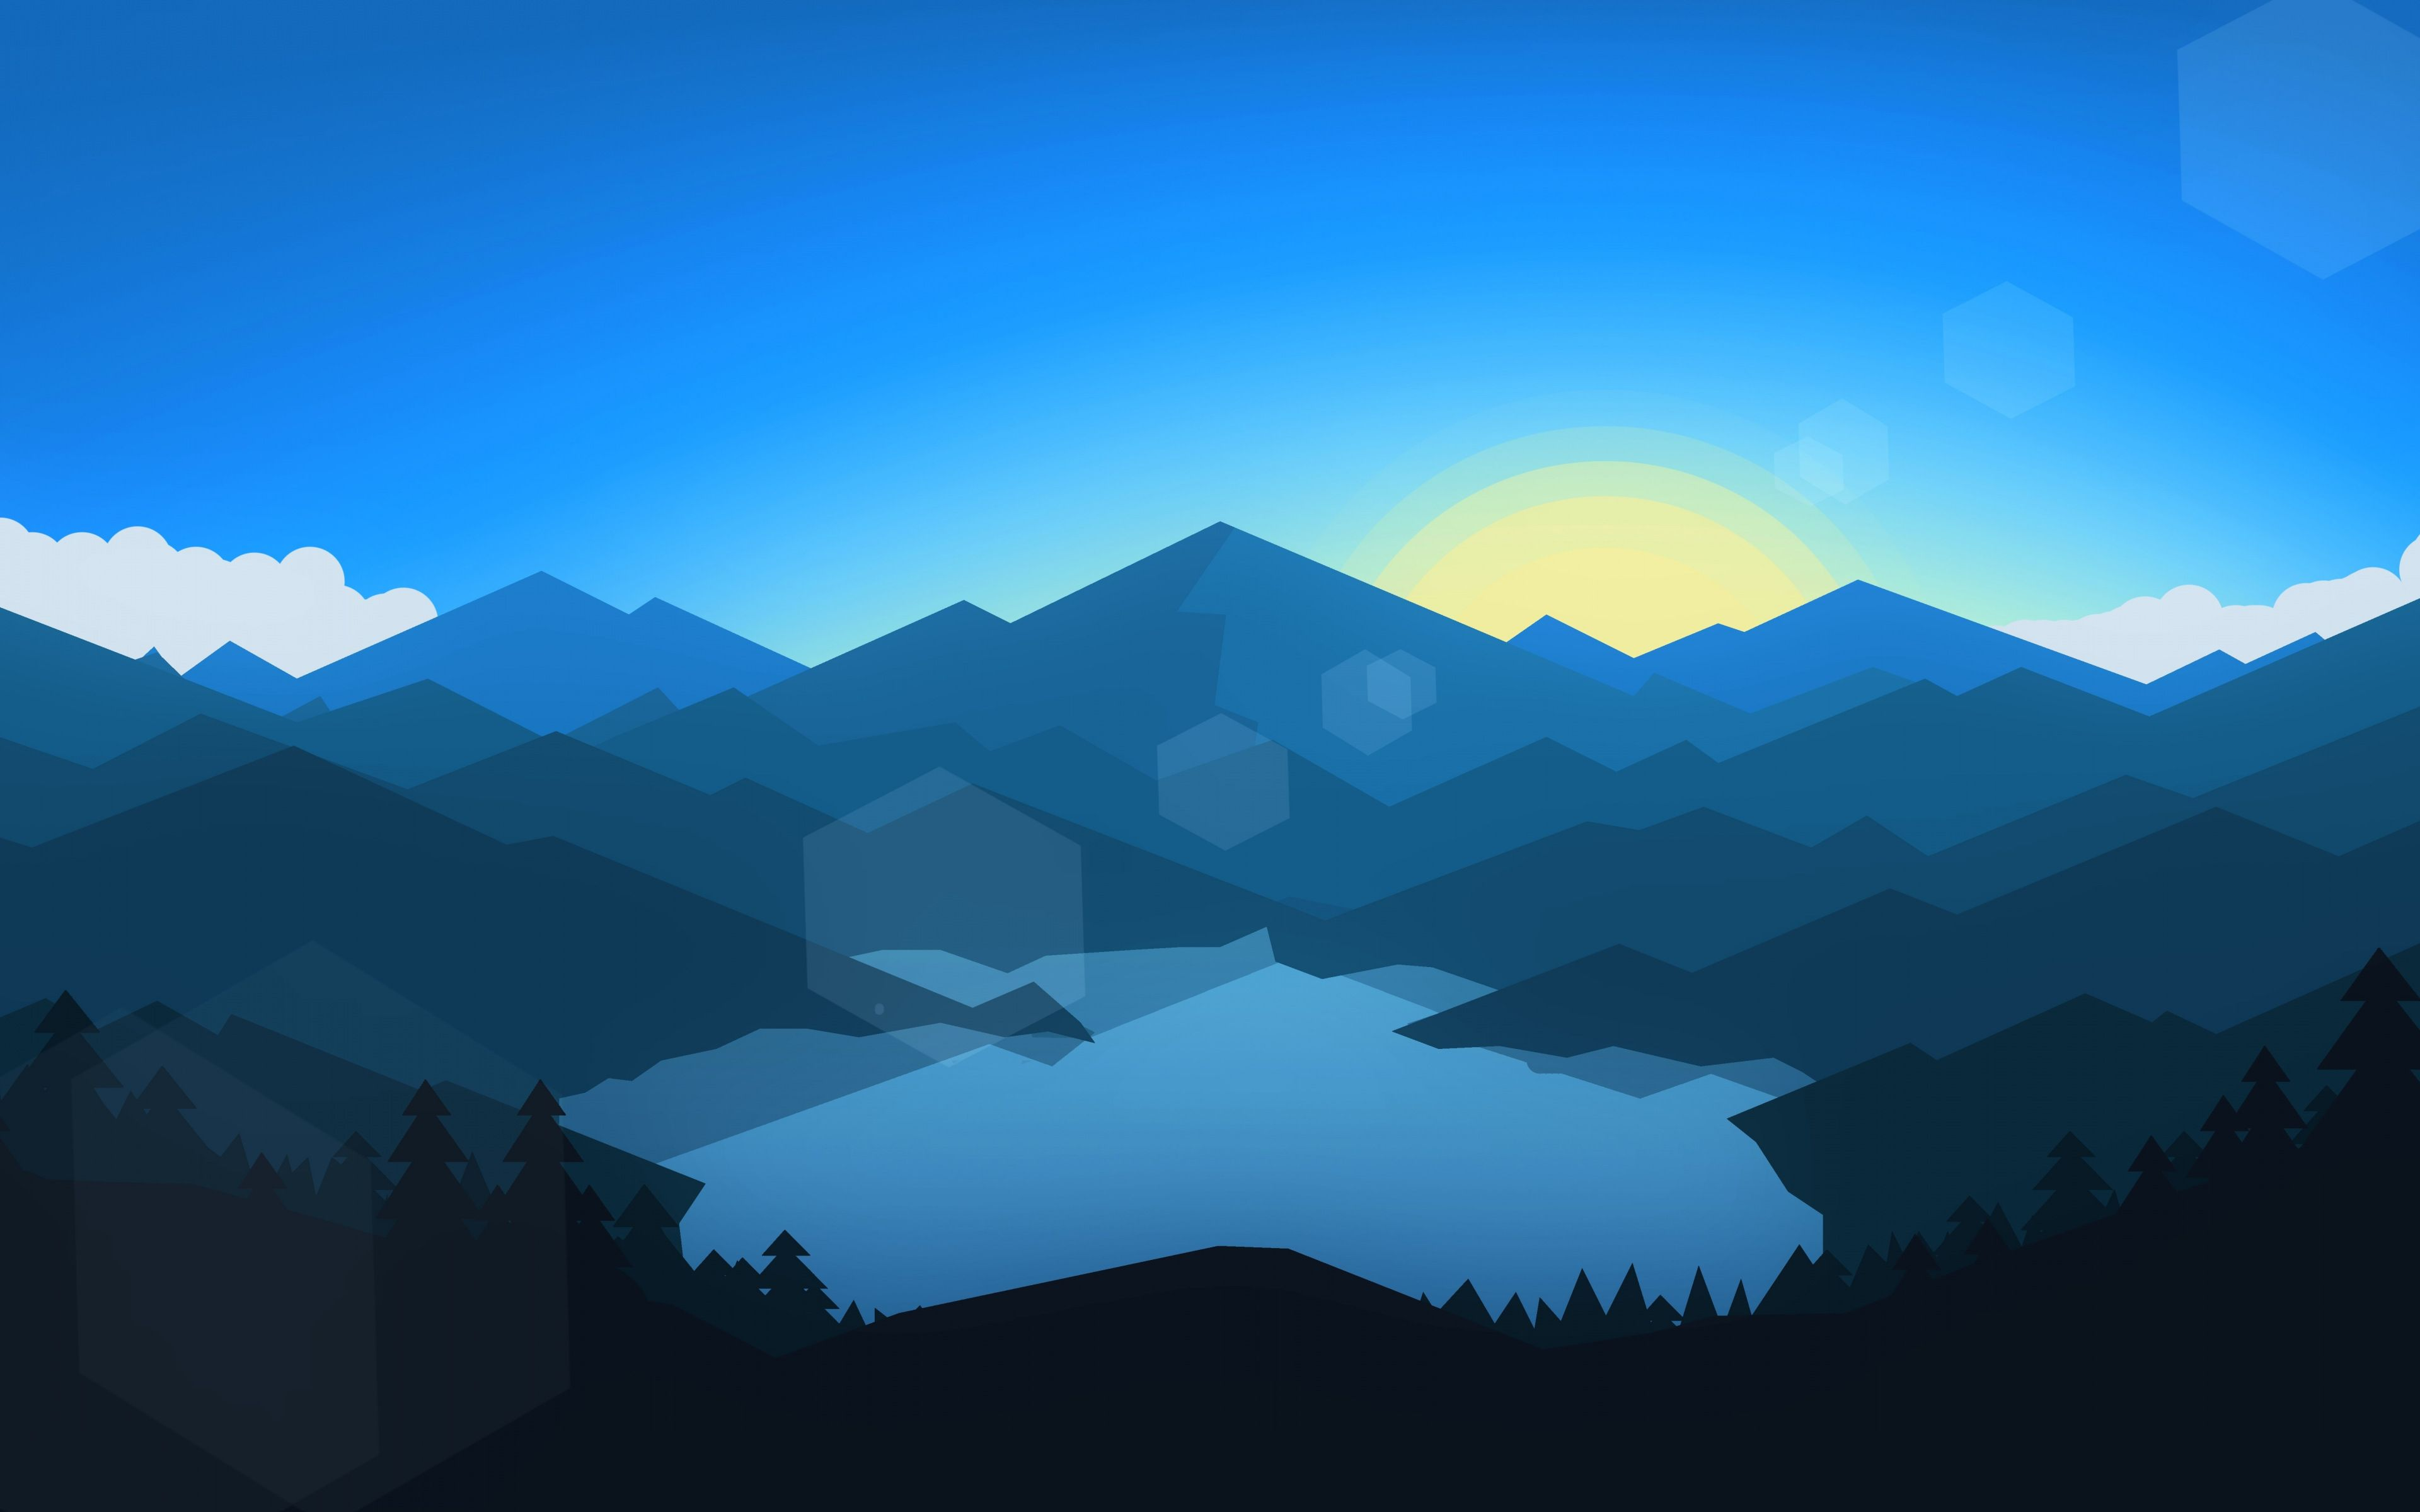 3840x2400 Download 3840x2400 wallpaper forest, mountains, sunset, cool weather ...